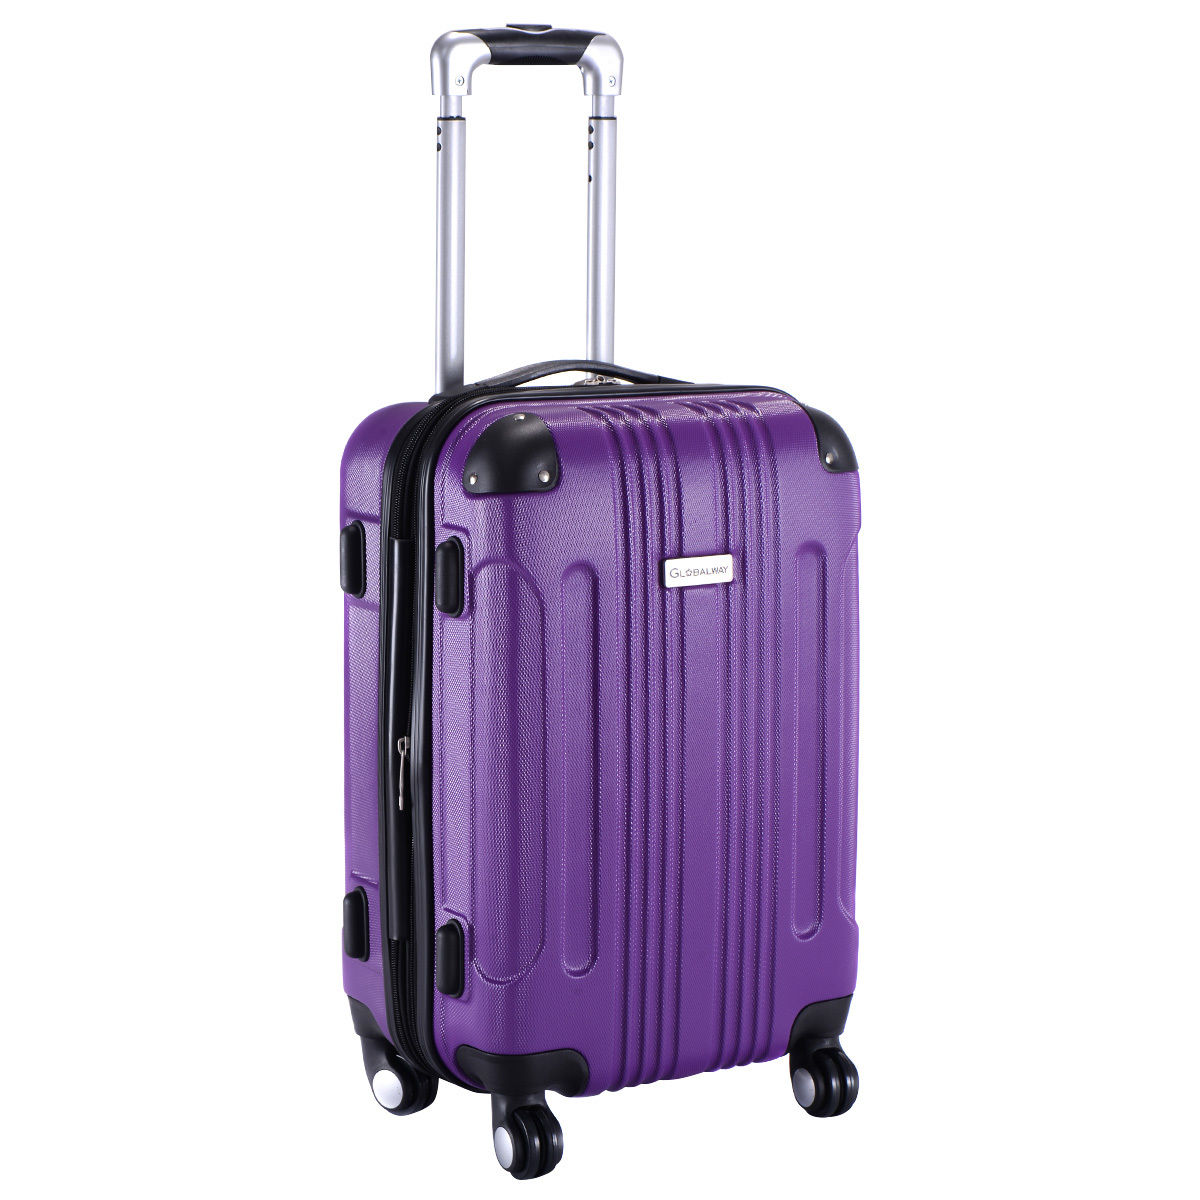 GLOBALWAY Expandable 20'' ABS Luggage Carry on Travel Bag Trolley ...